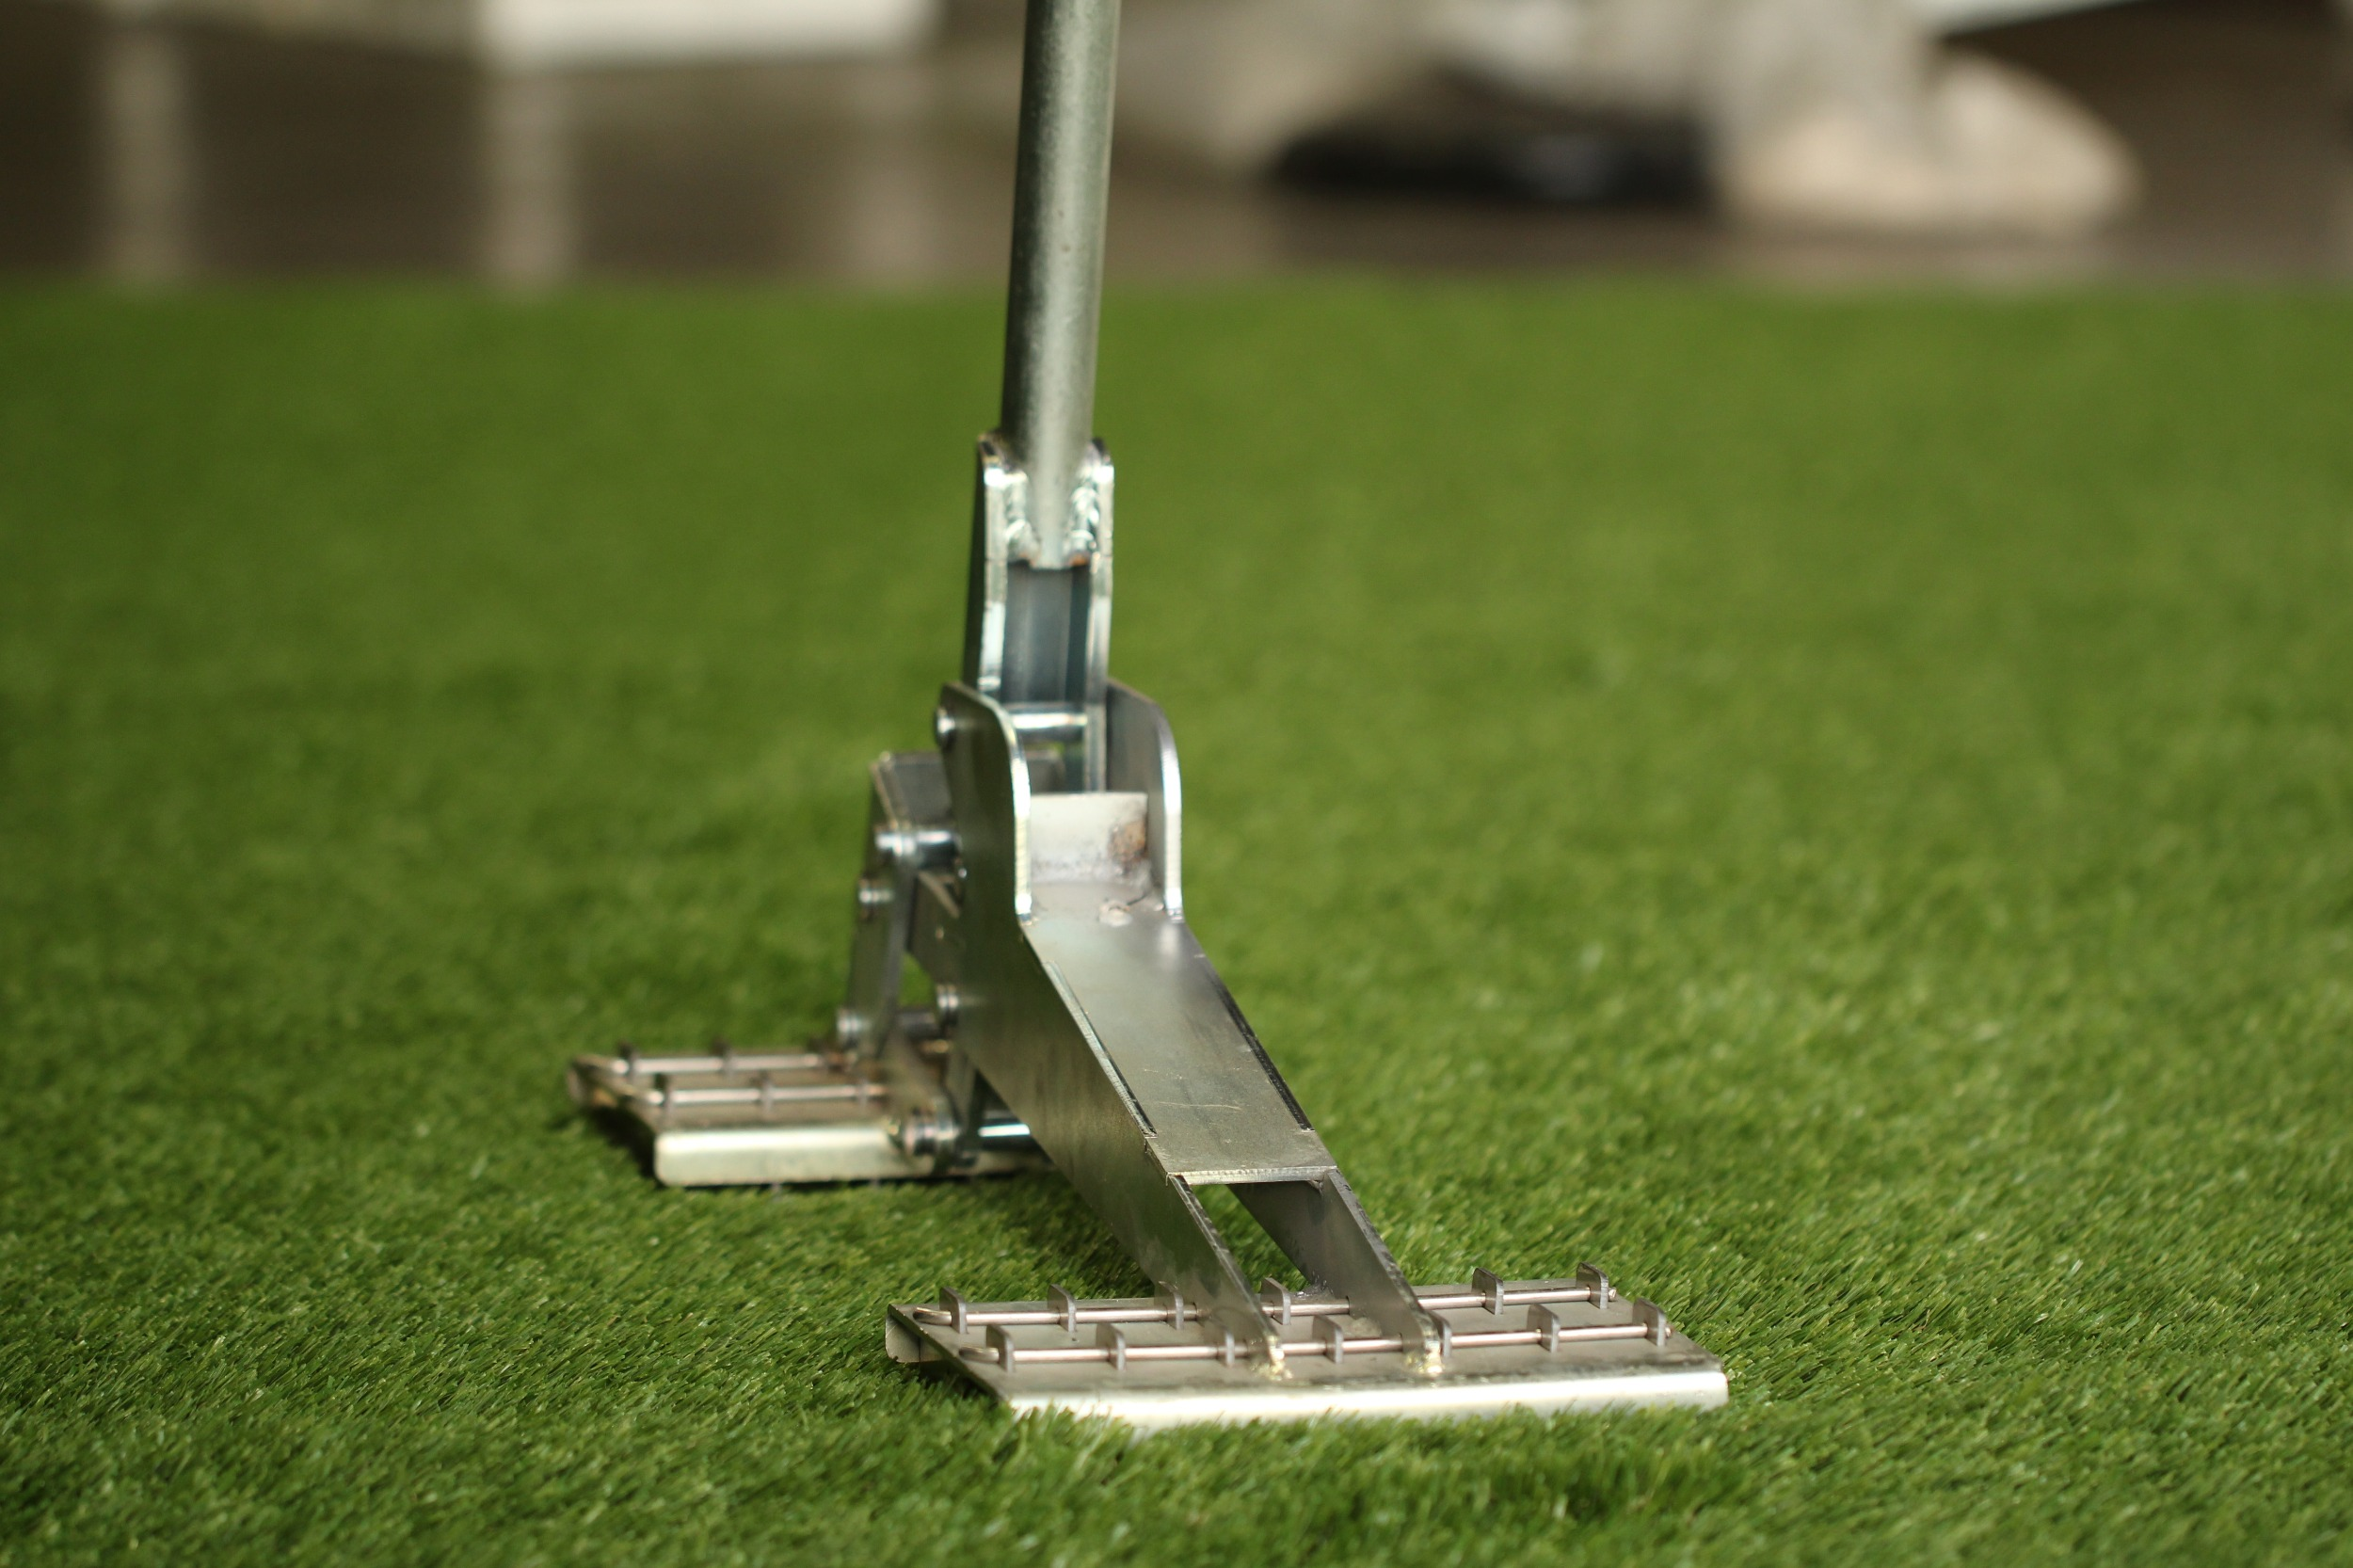 Turf Puller Artificial Grass Indianapolis, Indiana Synthetic Grass Tools Installation Indianapolis